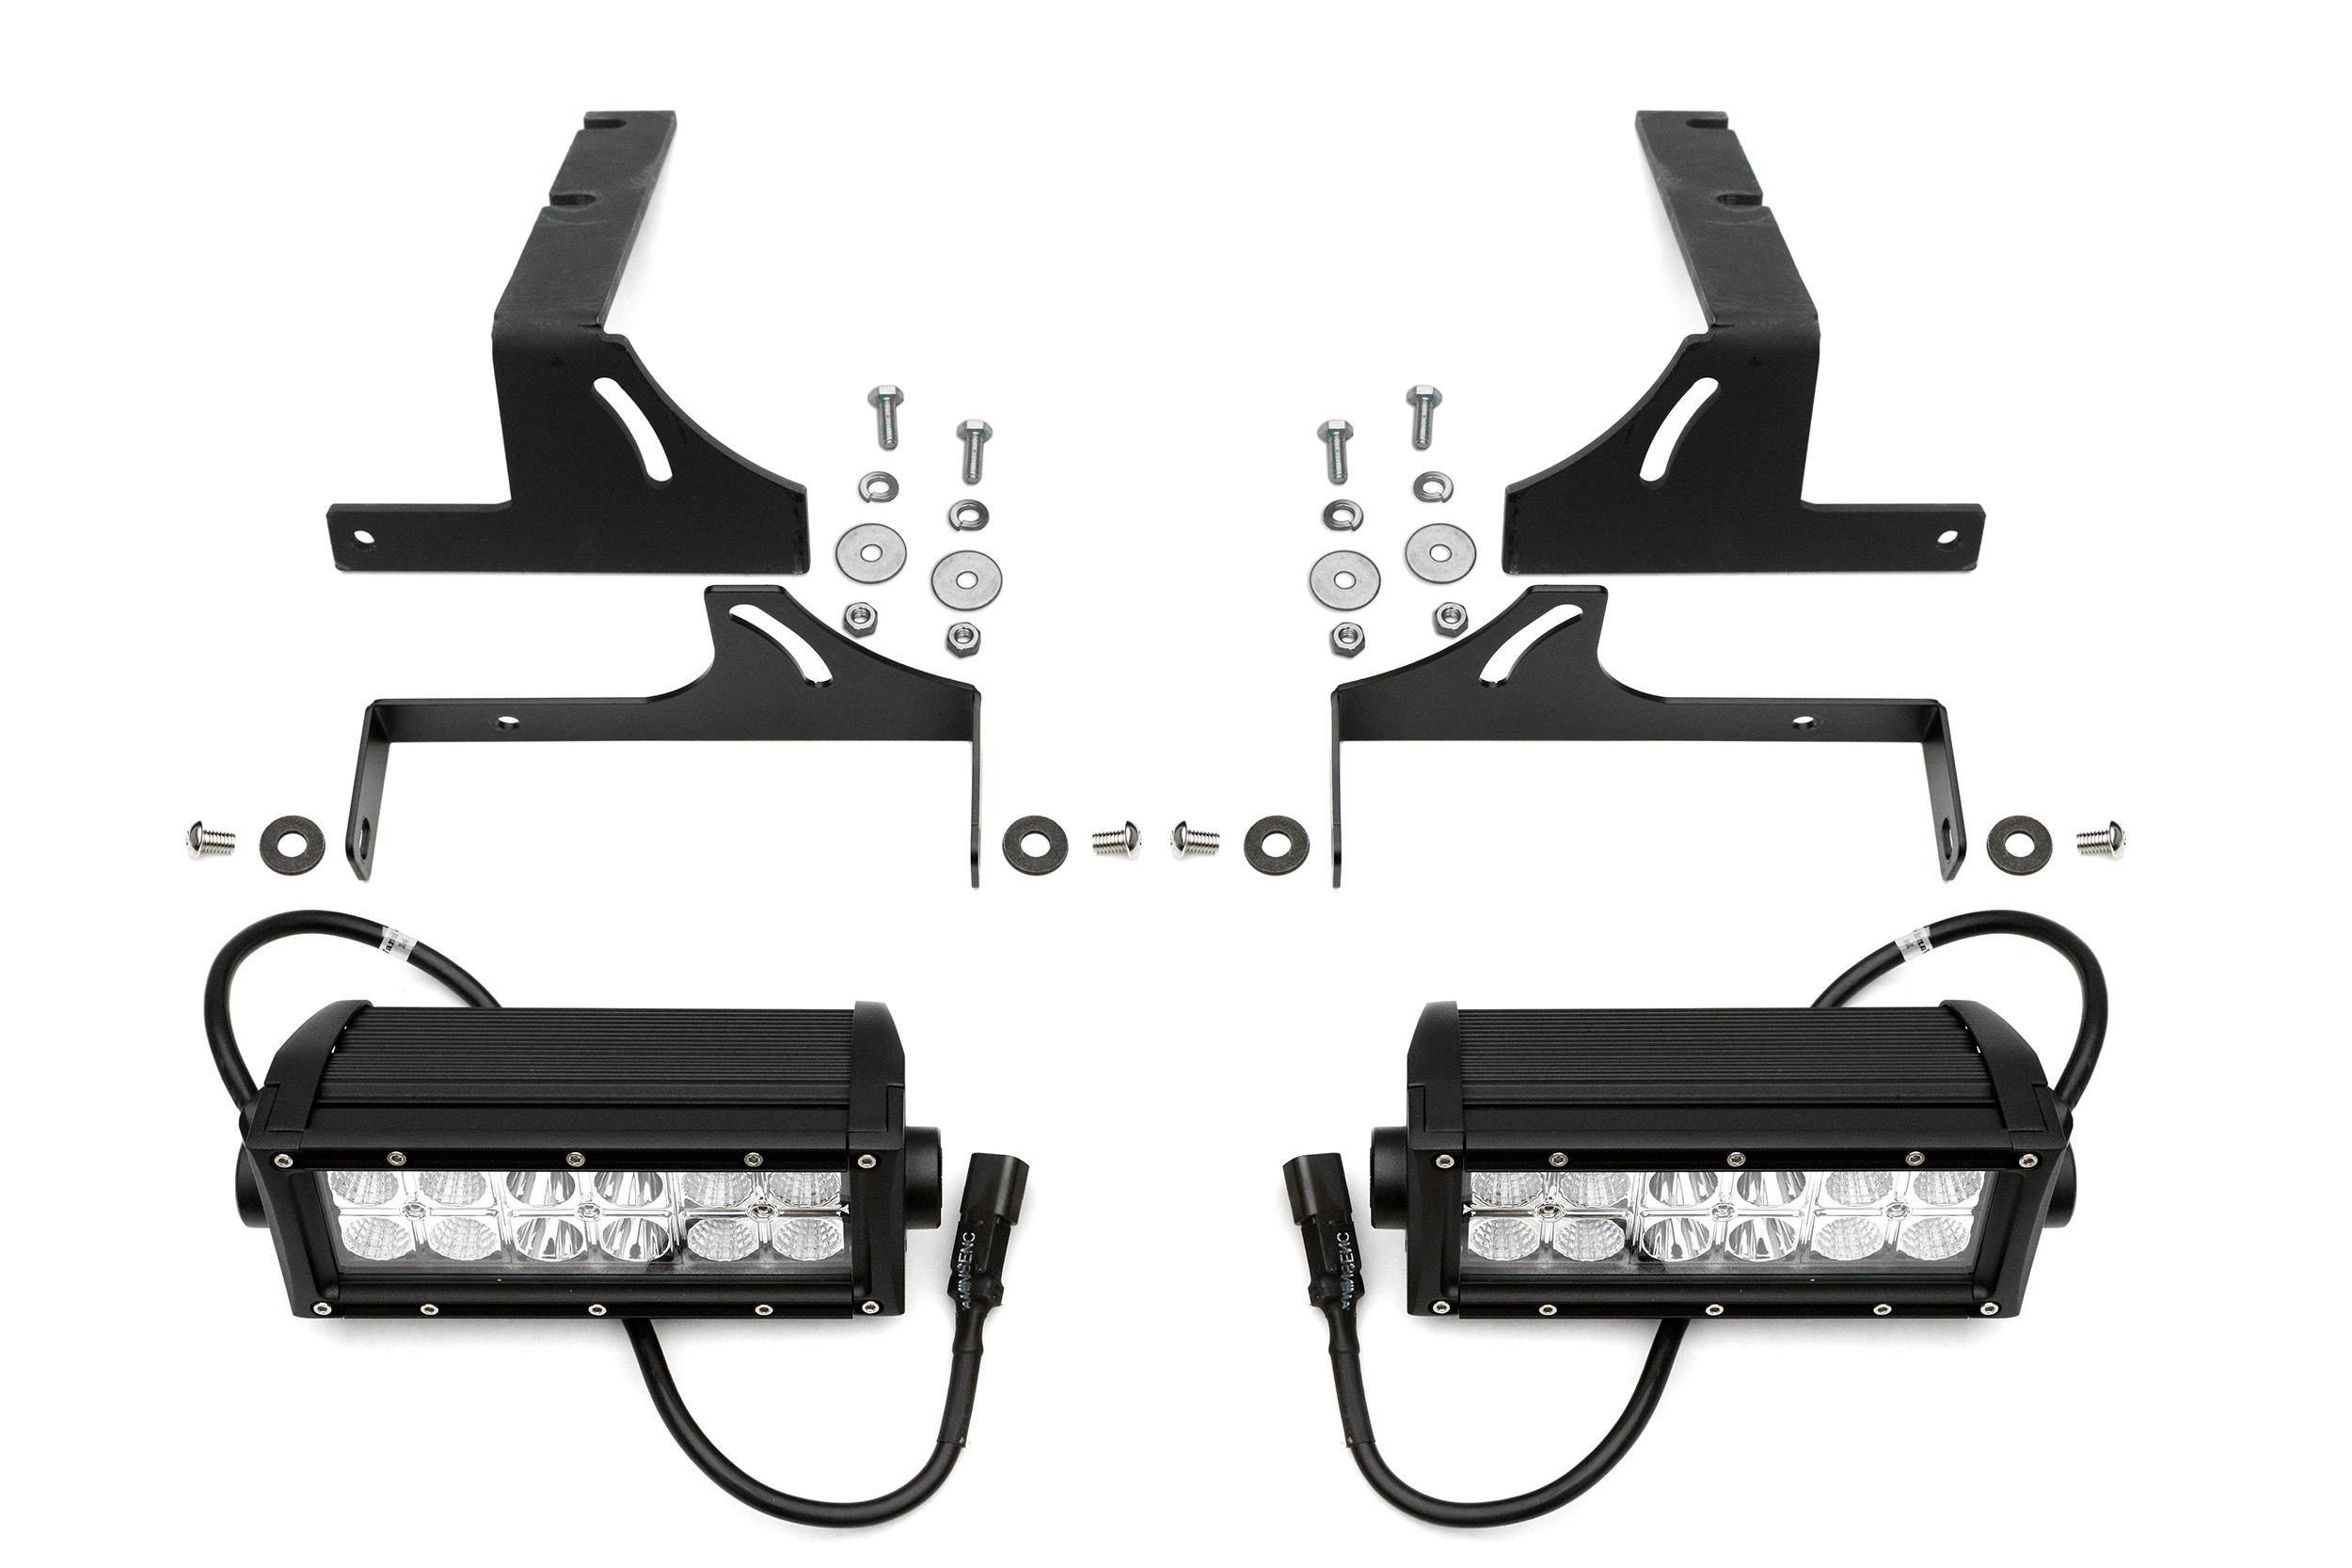 ZROADZ - Silverado, Sierra Rear Bumper LED Kit with (2) 6 Inch LED Straight Double Row Light Bars - PN #Z382051-KIT